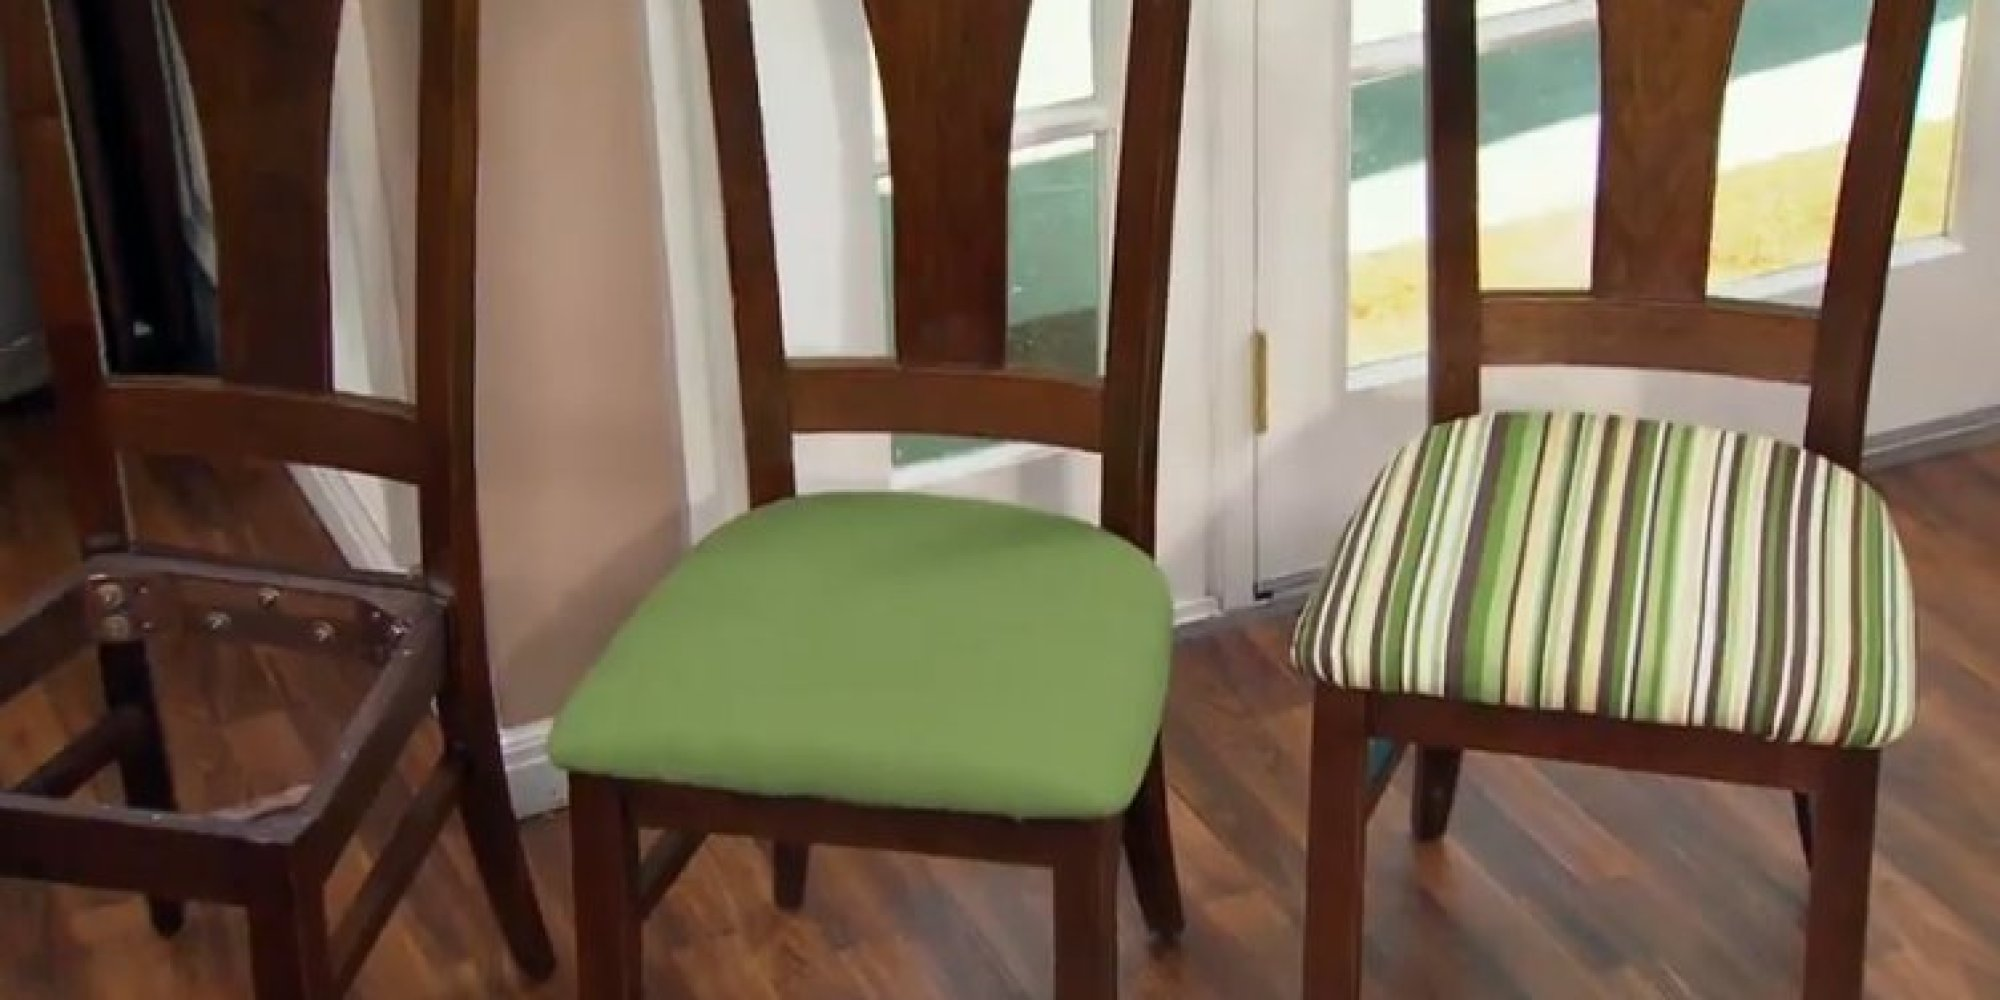 Give An Ugly Dining Room Chair A Makeover In 15 Minutes